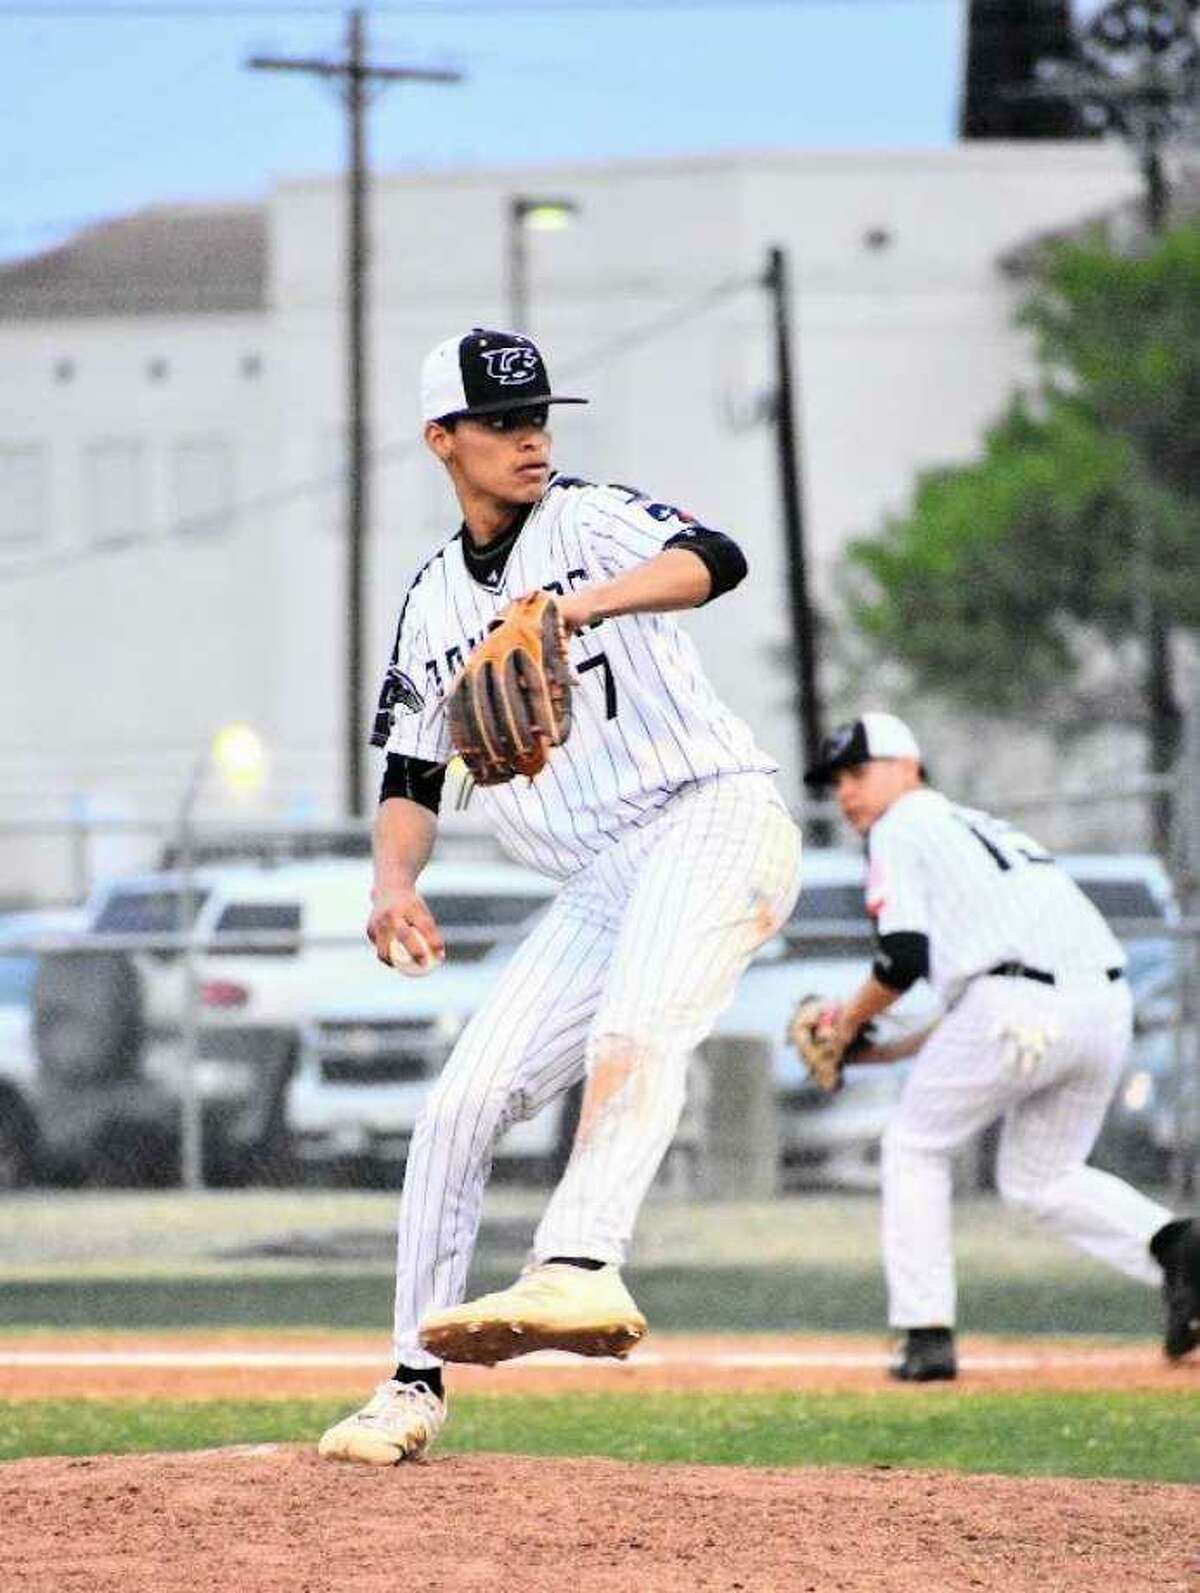 Marco Raya was recognized with All-American status by the National Baseball Coaches Association.